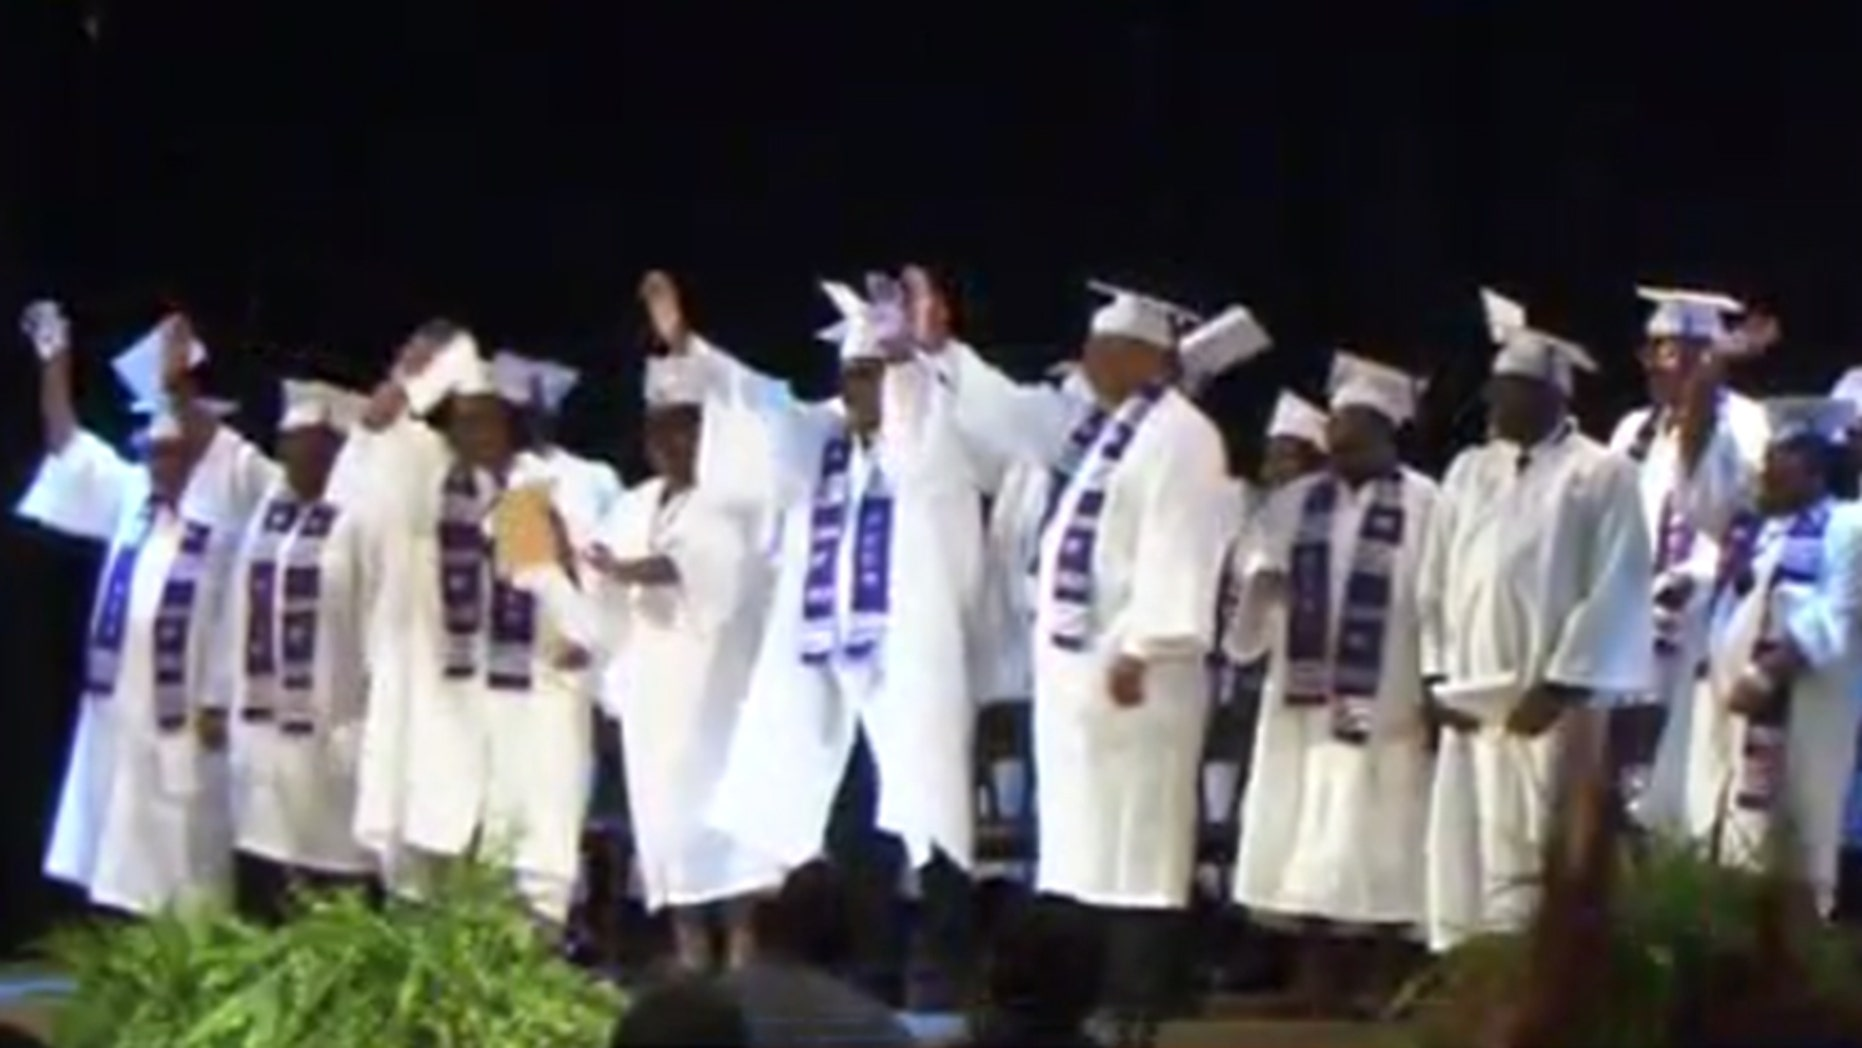 Former students of an all-black school in Georgia's Pike County say the ceremony wouldn't have been possible if it weren't for teachers believing in them for standing up for their rights, Fox 5 Atlanta reported.